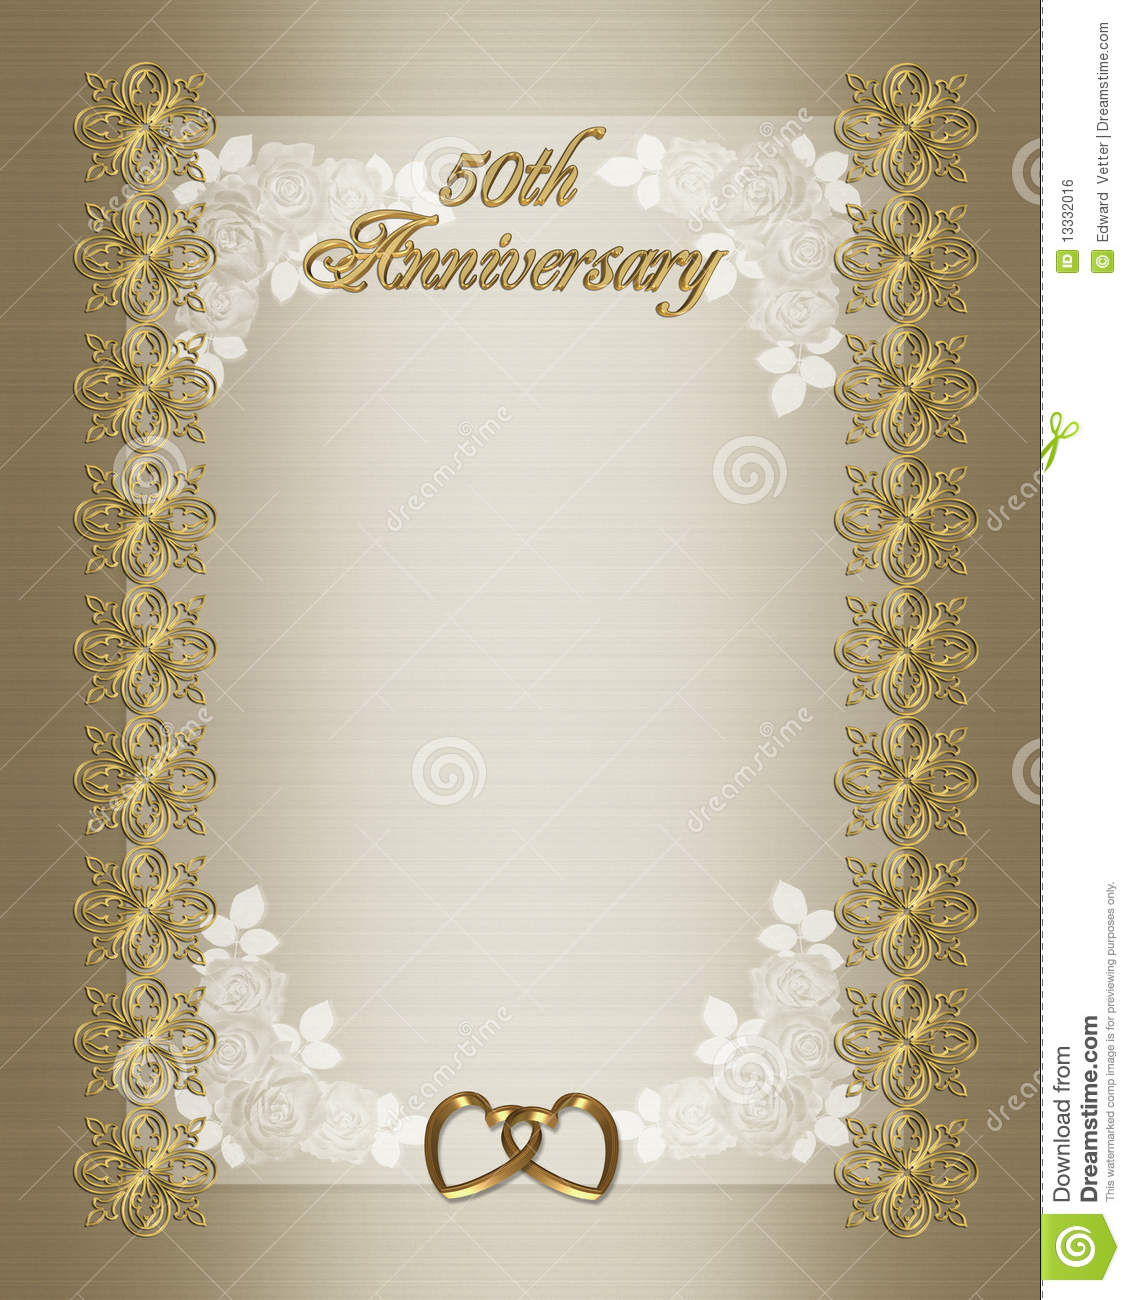 50th wedding anniversary invitation template stock illustration 50th wedding anniversary elegant formal invitation template background border with gold text and ornamental accents on golden satin stopboris Gallery